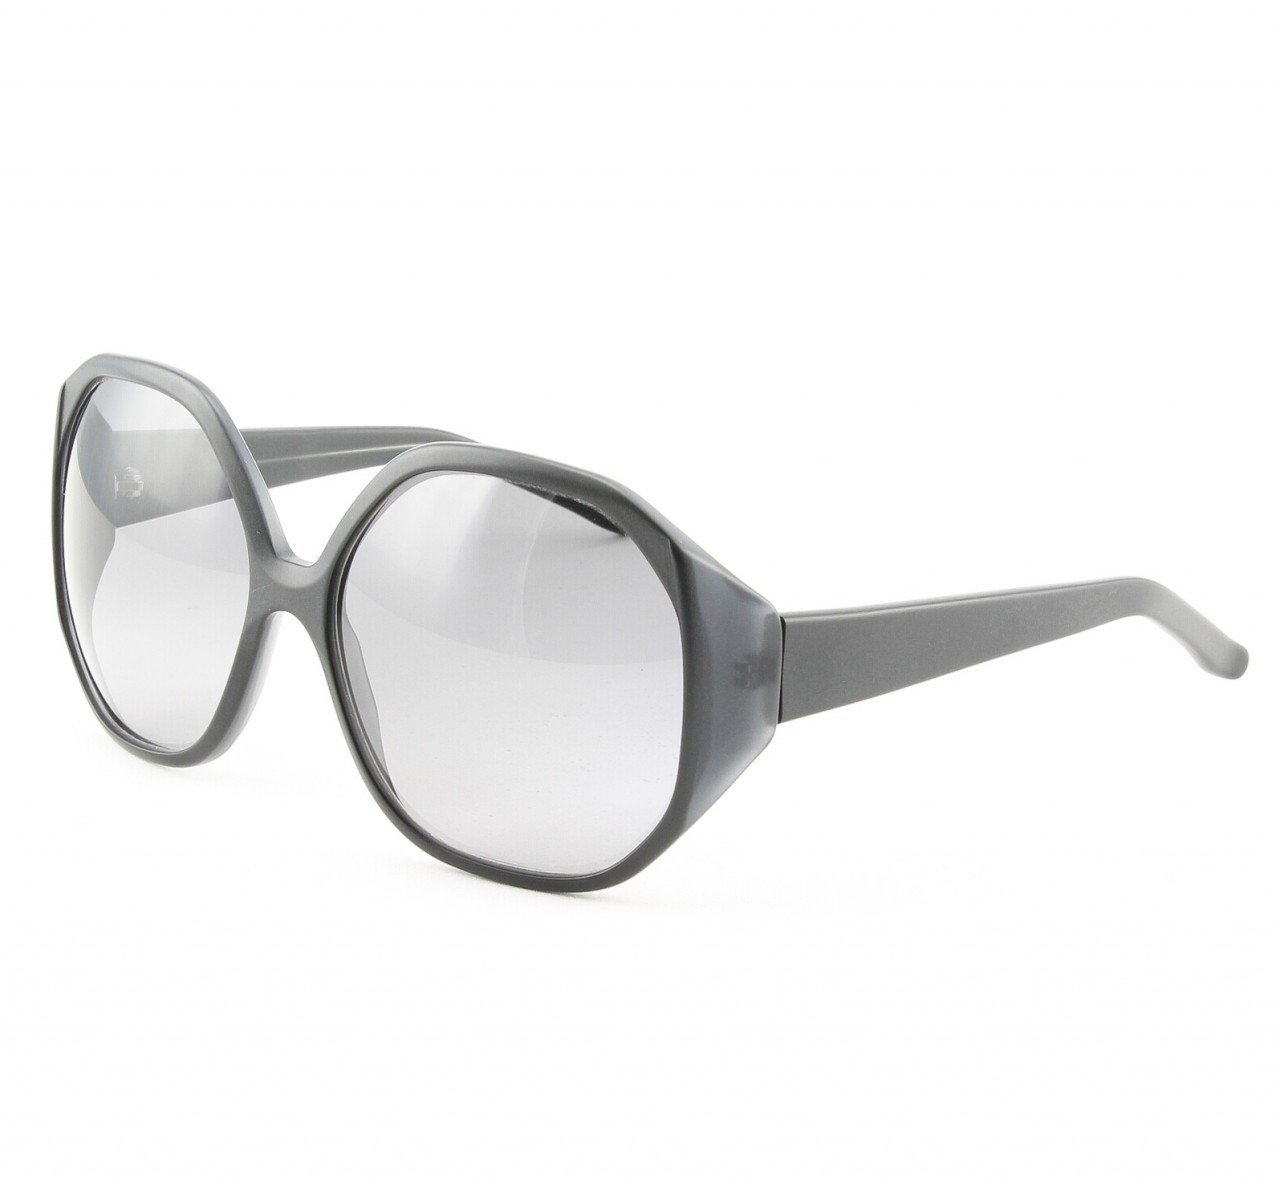 Marni MA218 Sunglasses Col. 03 Frosted Graphite Gray Frame with Gray Lenses